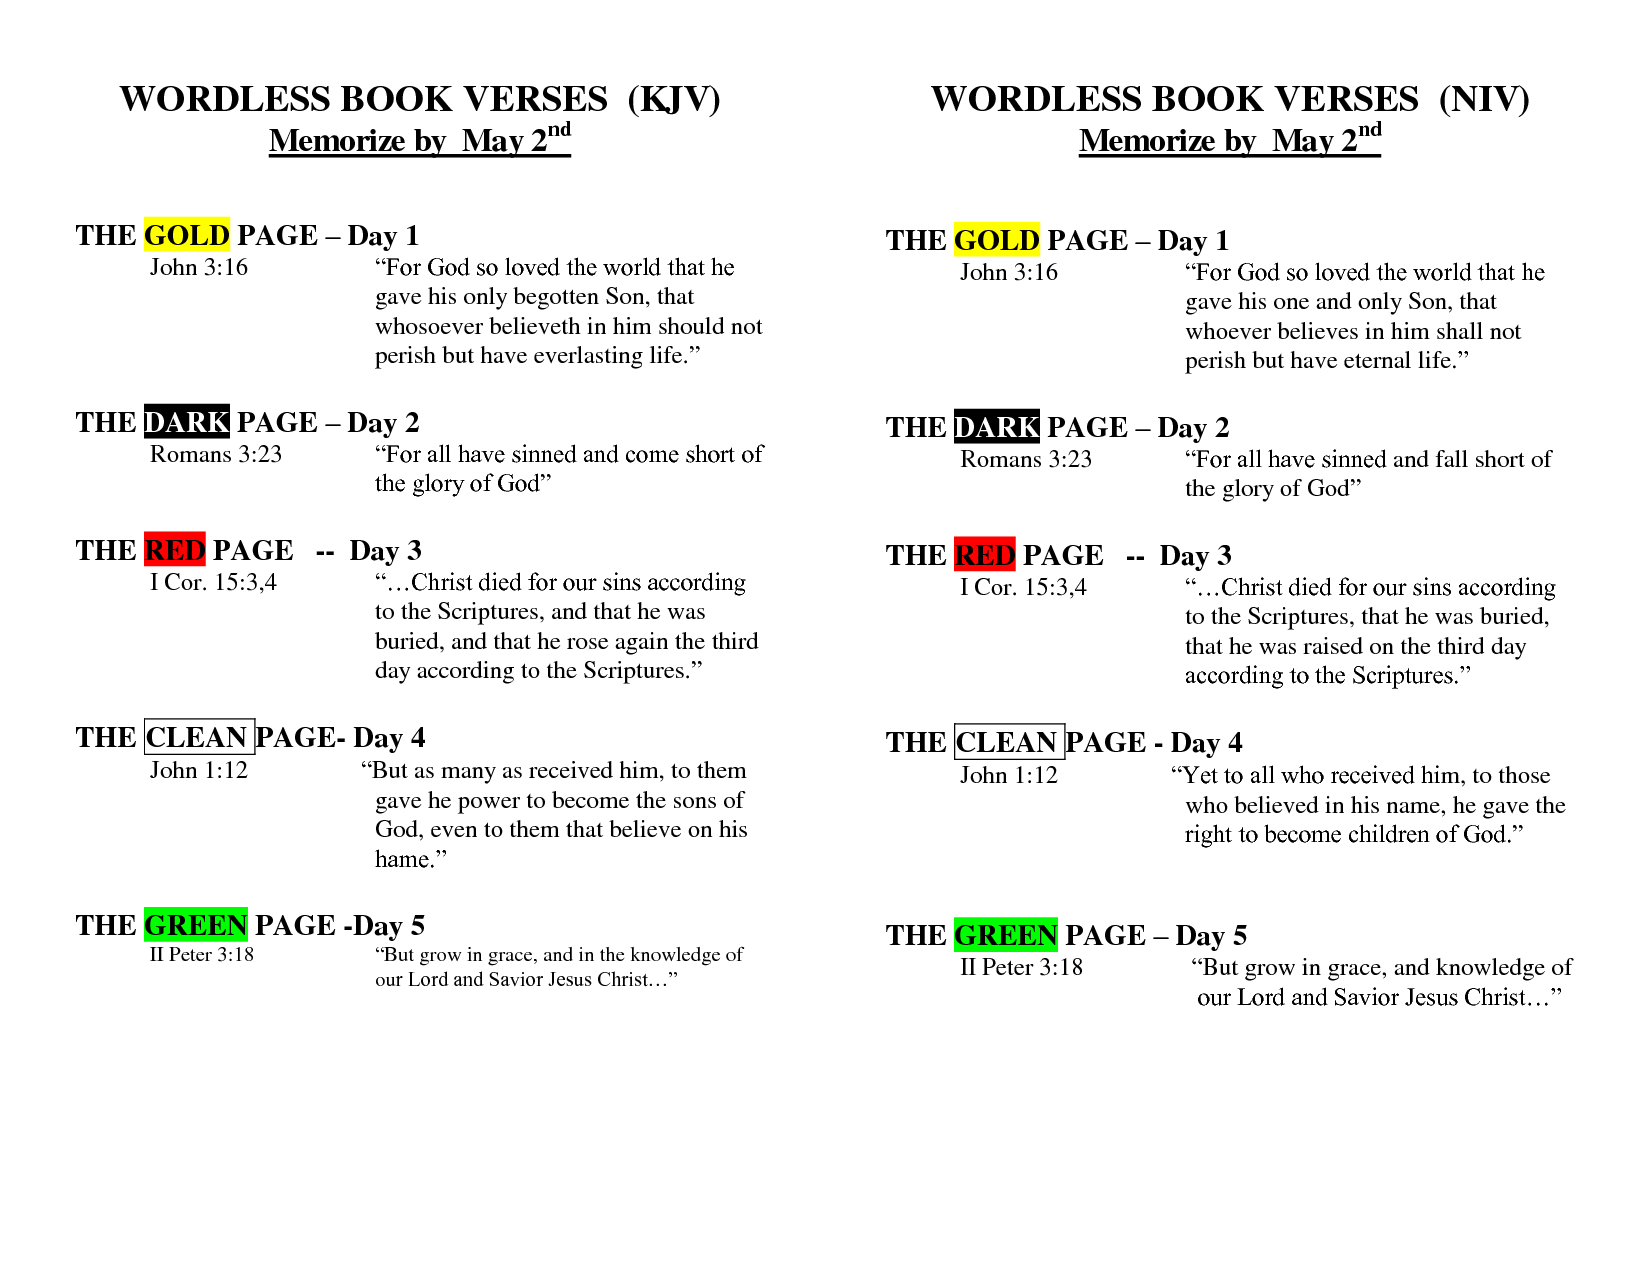 picture regarding Wordless Book Printable titled wordless guide printables - Google Glimpse VBSArt Wordless